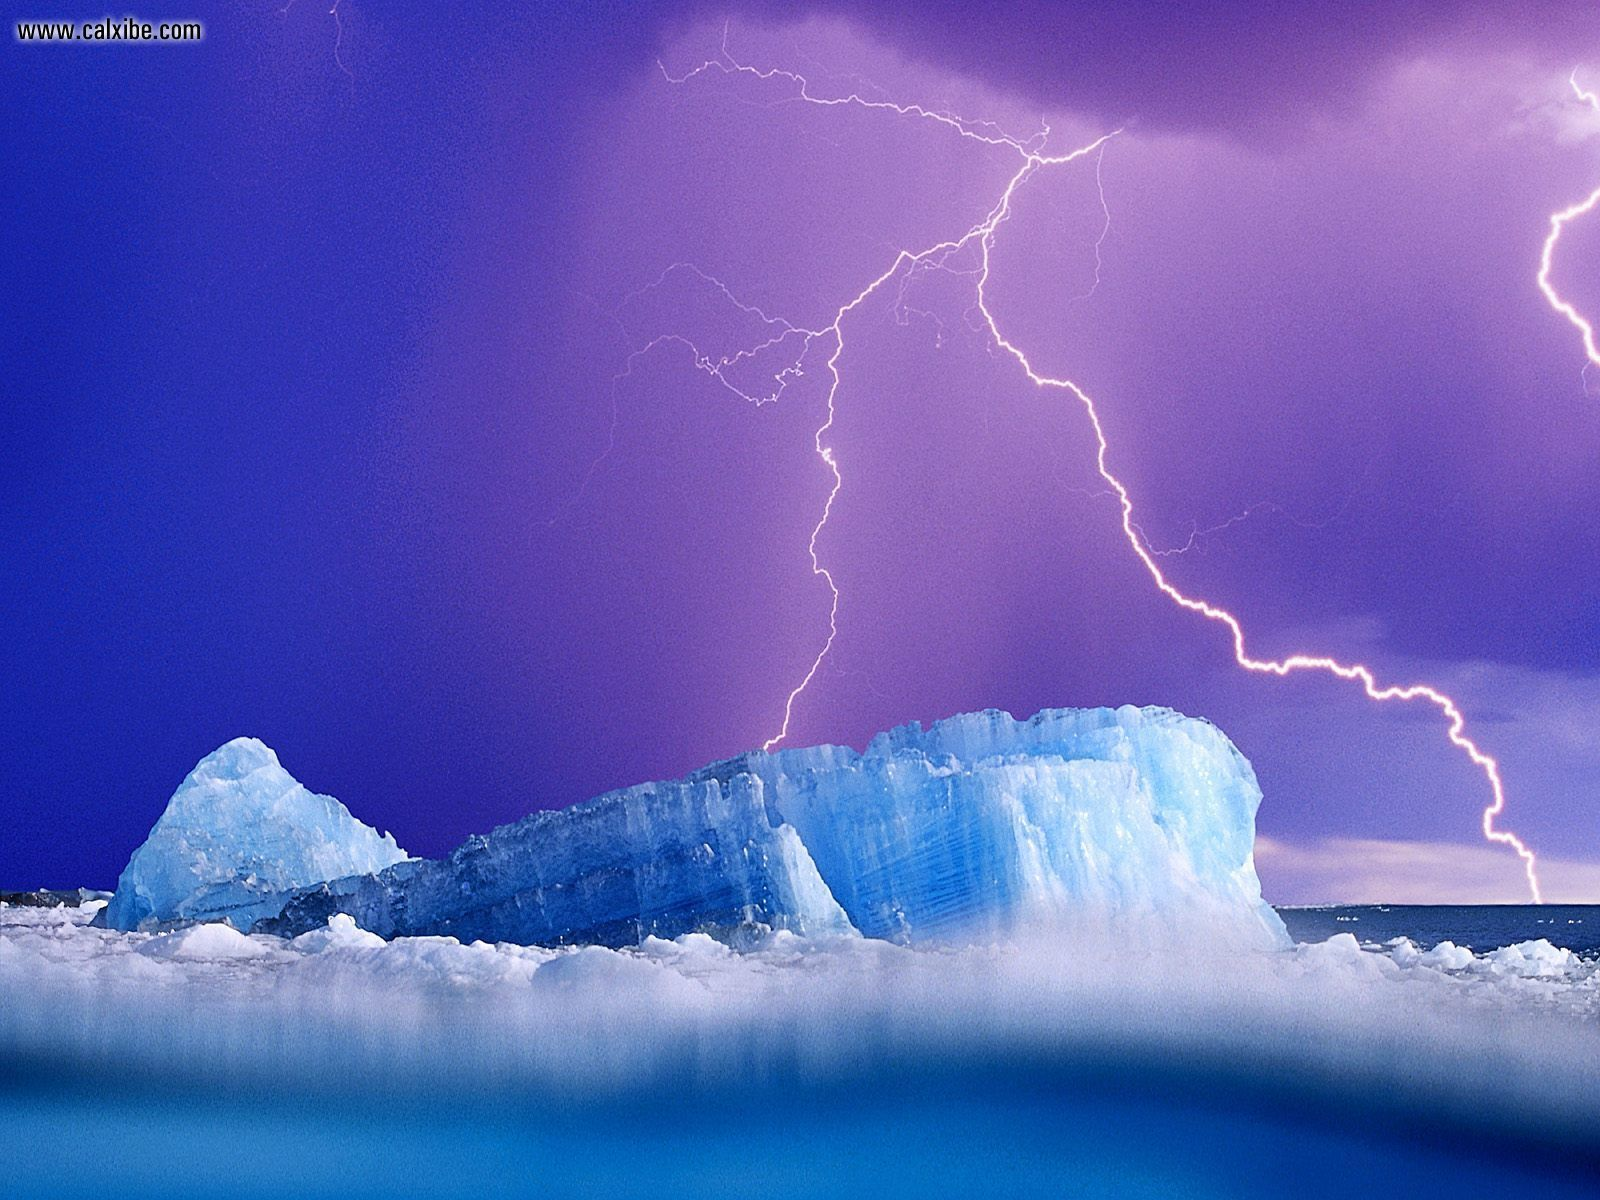 Lightning over icebergs, Turquoise chambers in Egypt, it was 2 help transmutation attracting sound waves 2 heal the, I was attacked by evil governments,  establishment 2 assassinate me with lethal radiation in 2009, they sent me a beam of radiation but they couldn't kill, I became stronger,  https://stargate2freedom.wordpress.com/2015/11/11/stress-and-pollution-are-the-1-killer-in-our-corrupted-world/